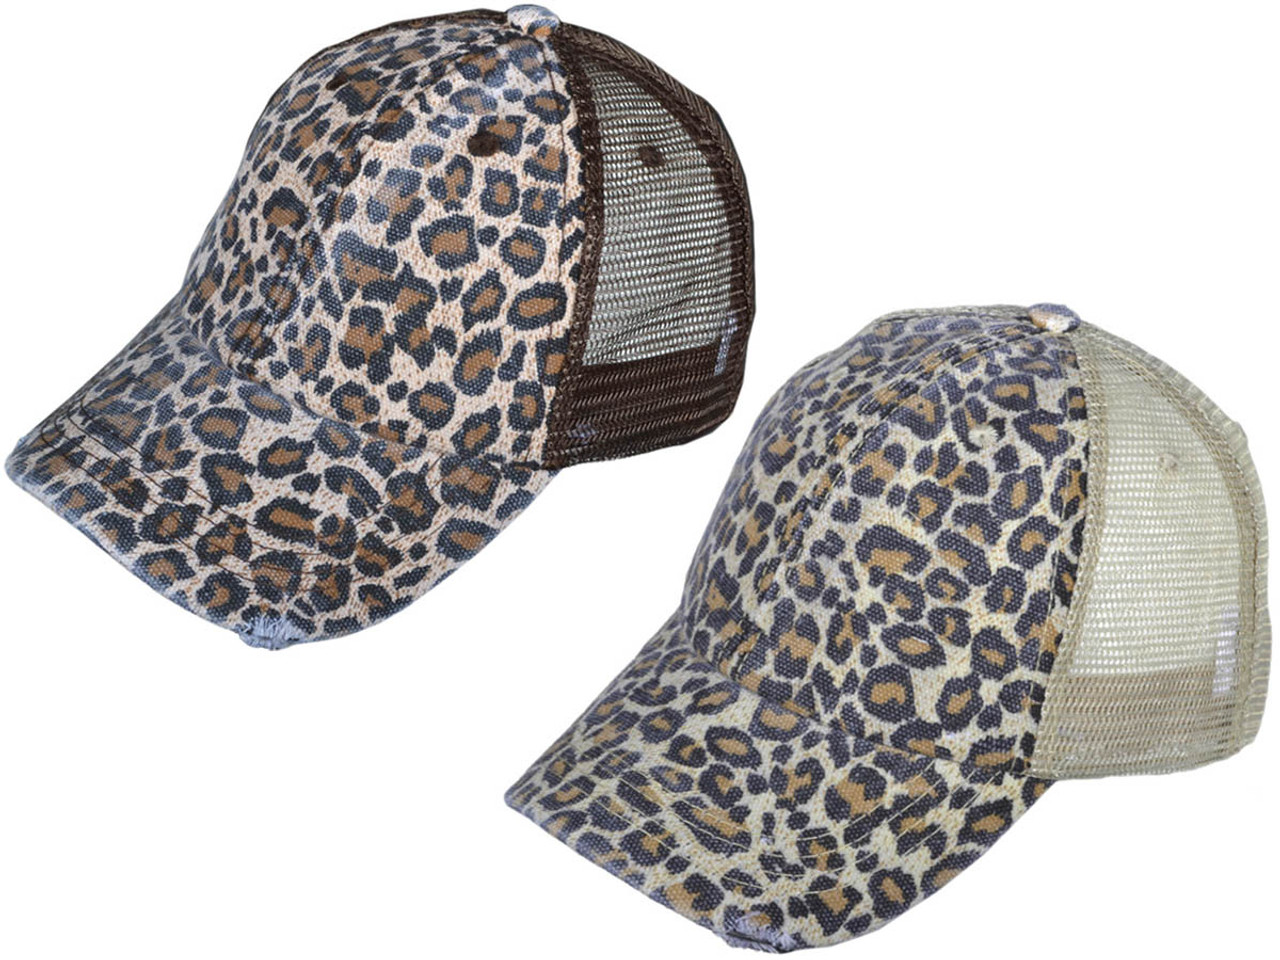 Animal Print Vintage Trucker Hats Soft Structured Distressed Washed ... f430d84aa58e